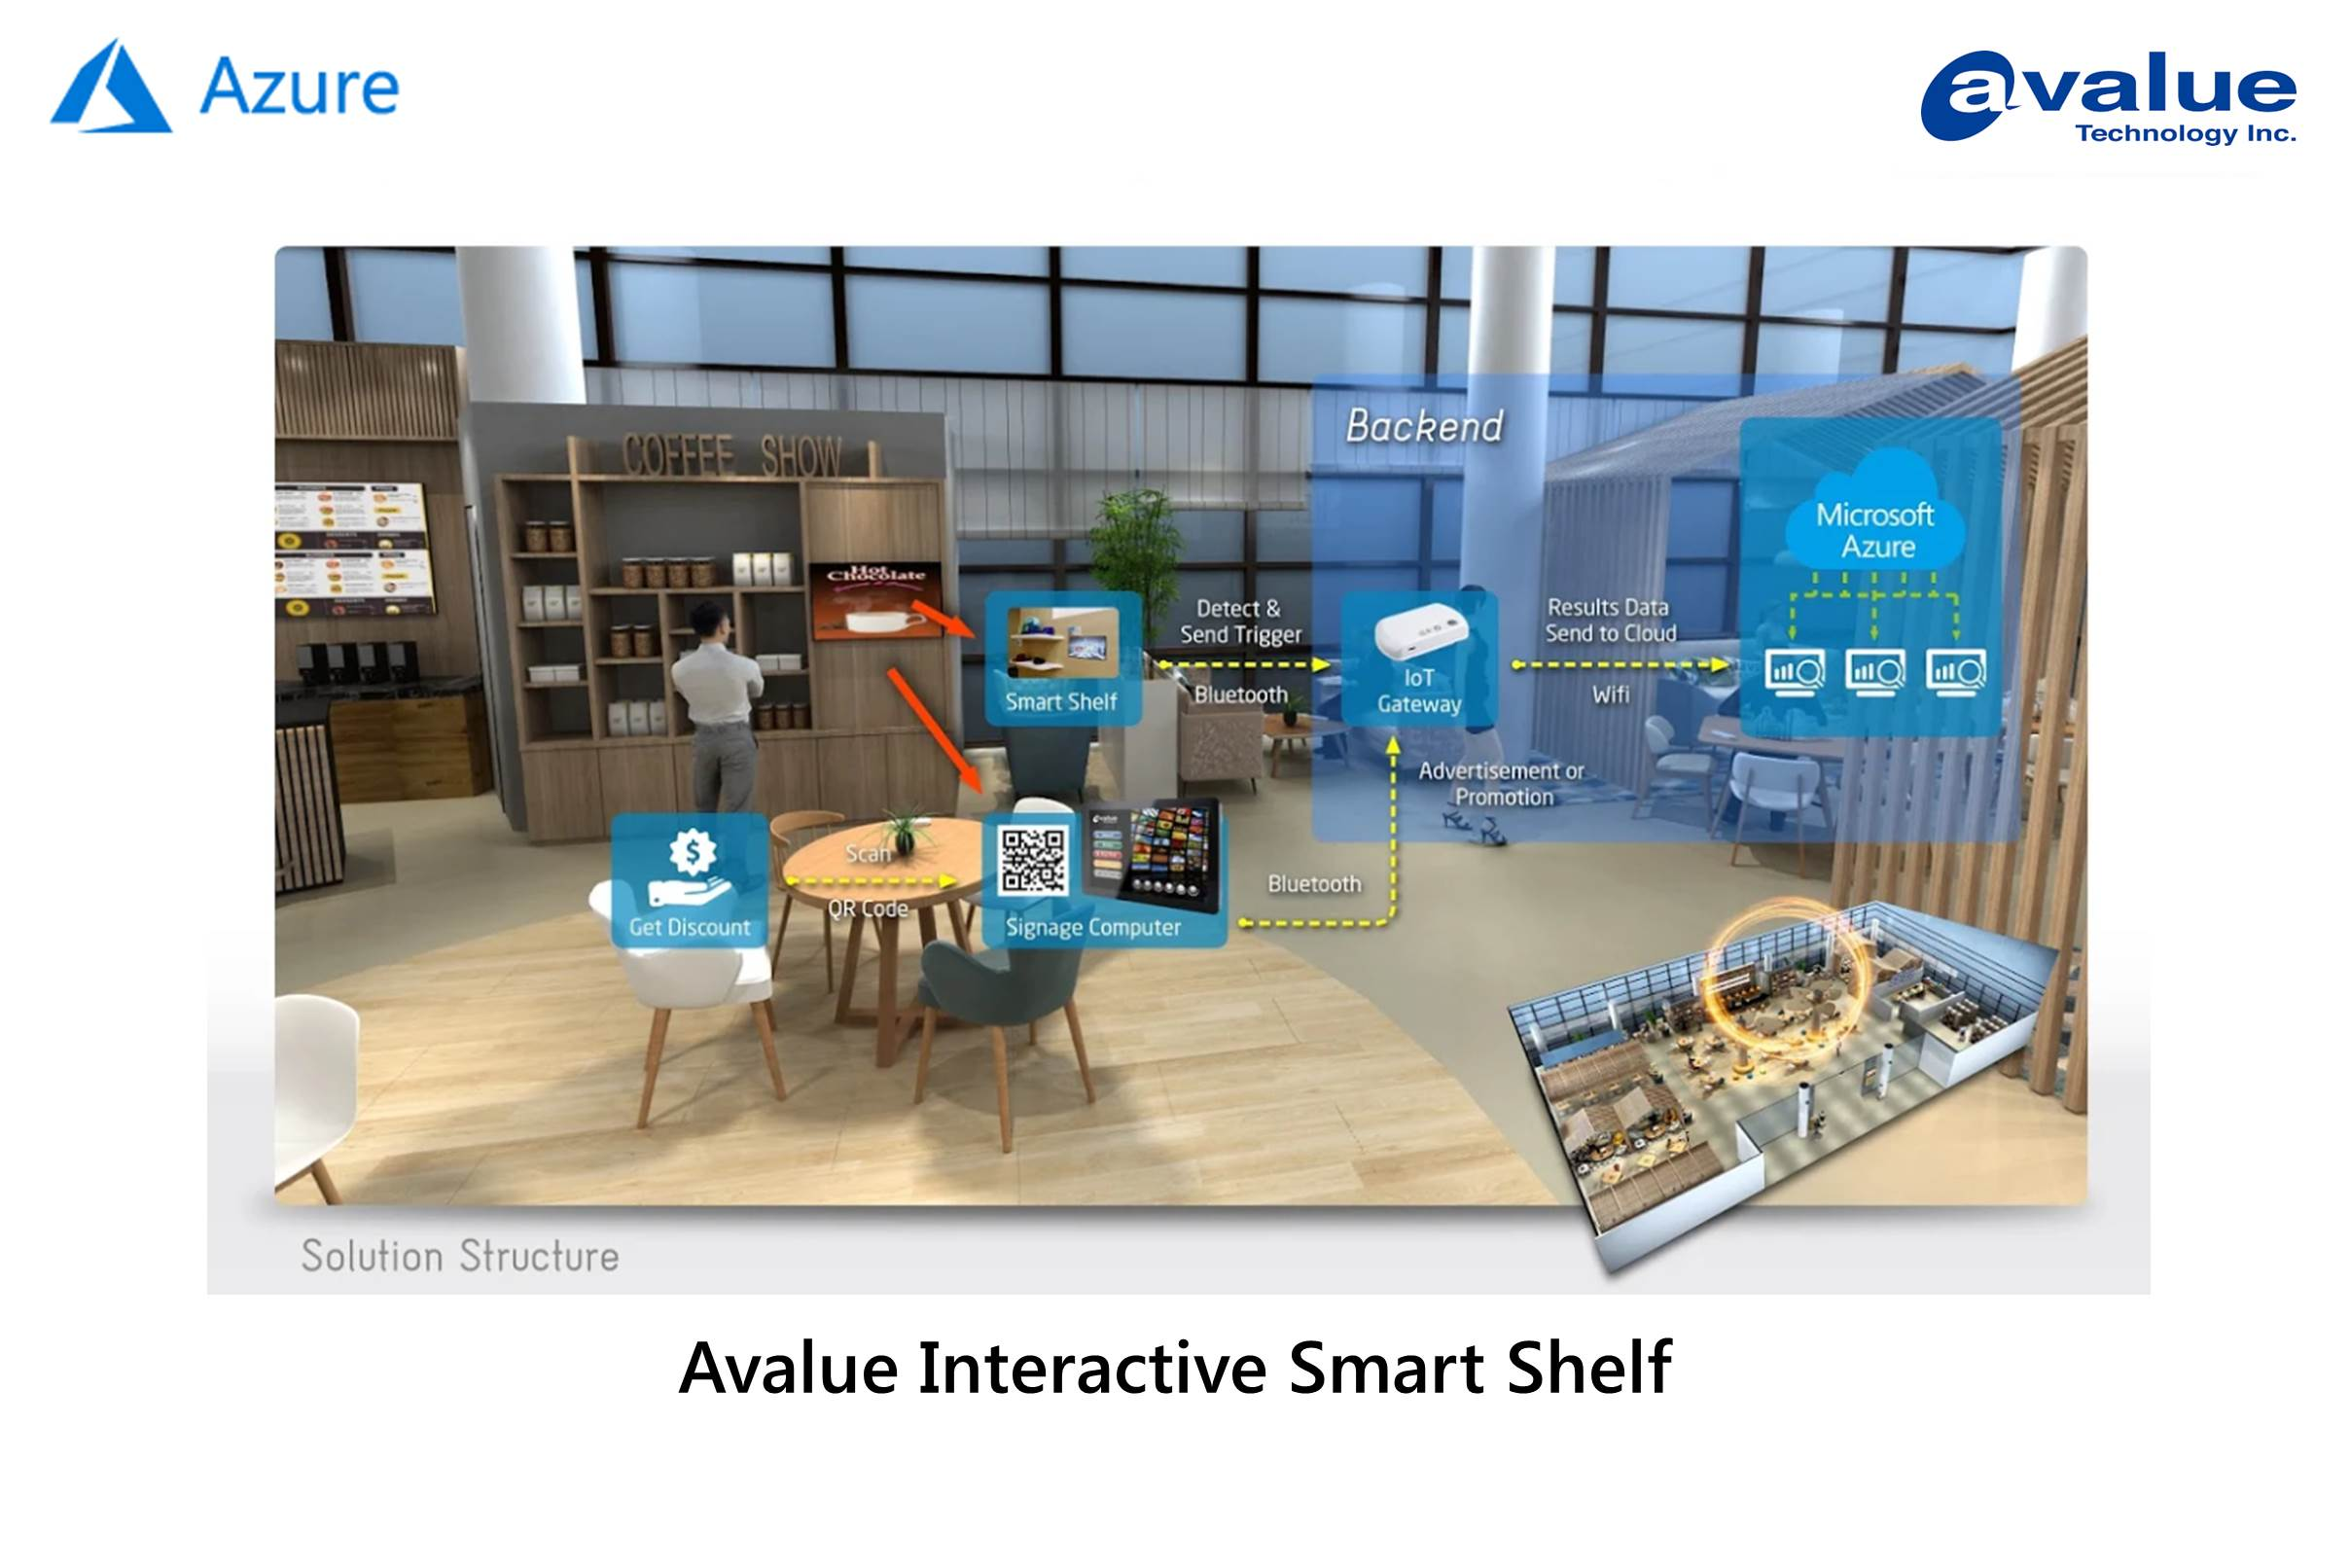 Avalue Interactive Smart Shelf